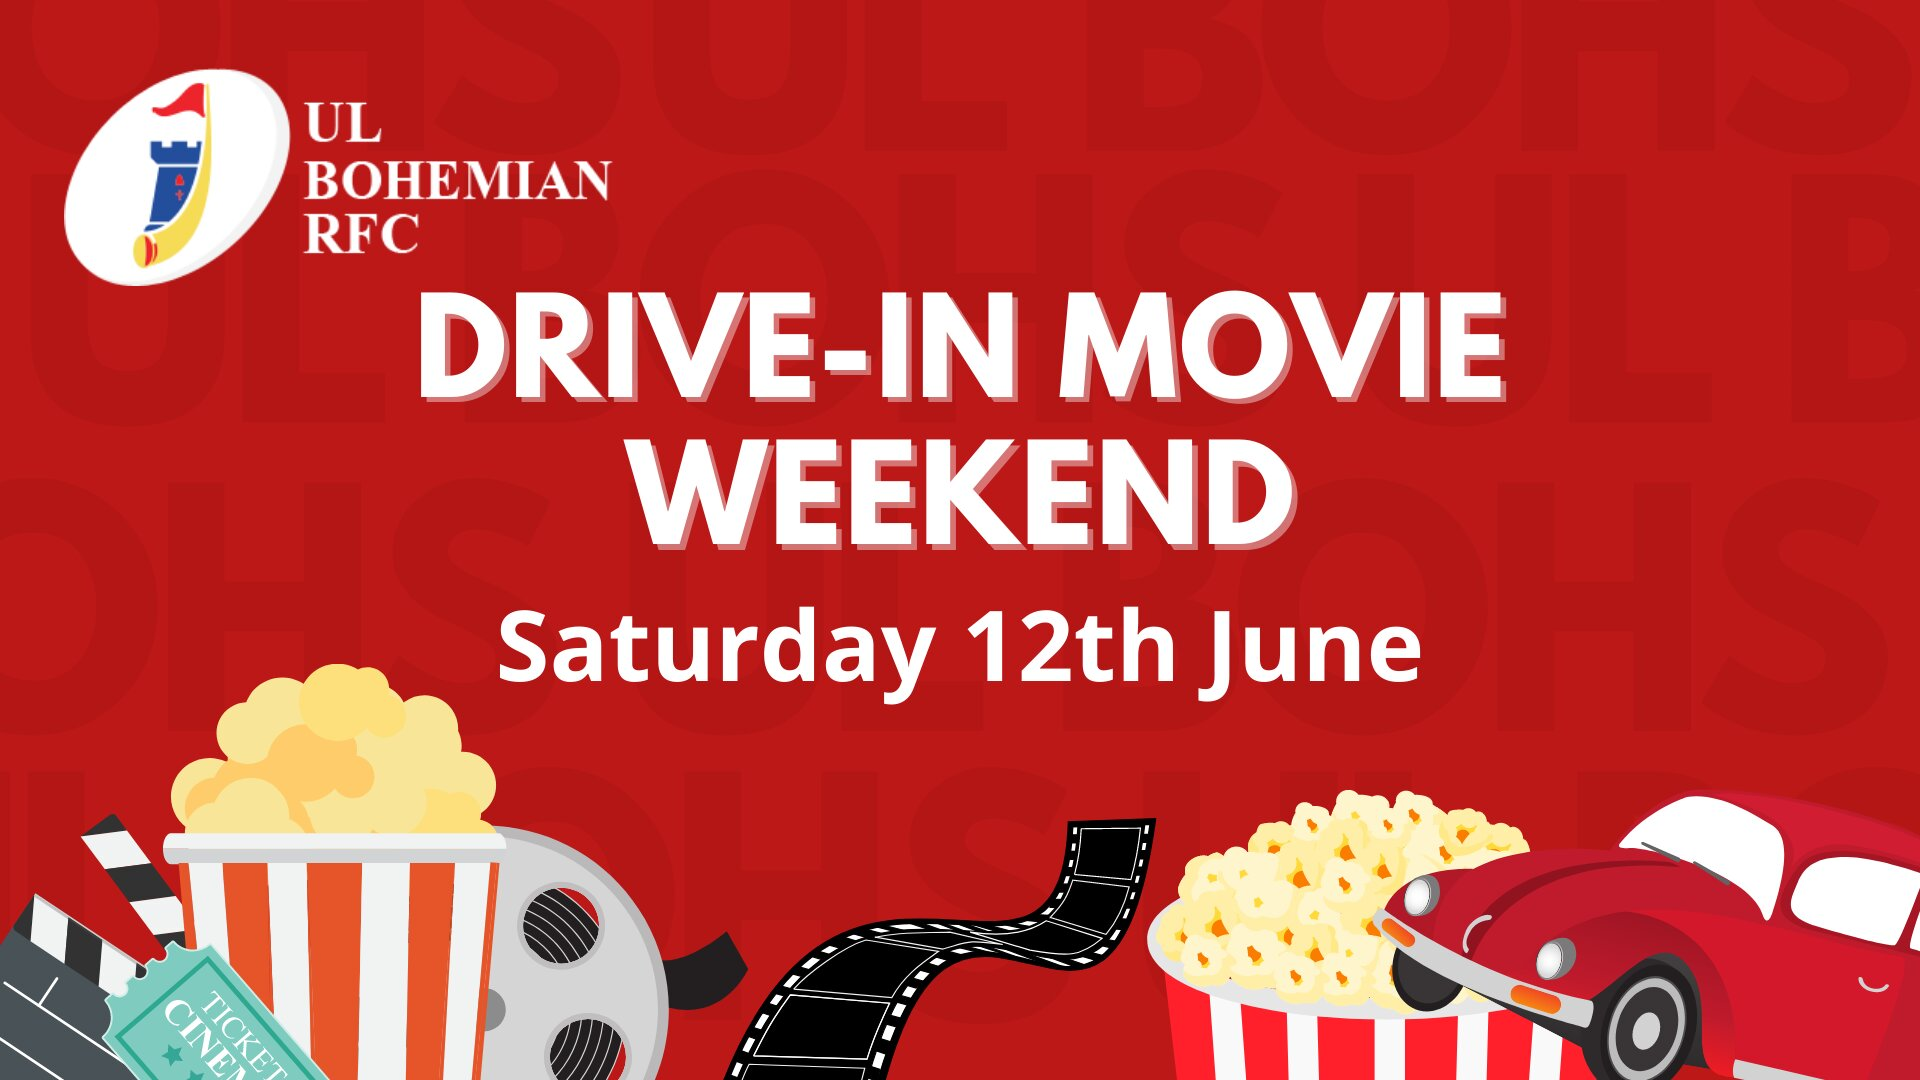 UL Bohs Drive In Movie Weekend on Saturday, June 12 organised by UL Bohemian RFC is for the local community, club members and extended people of Limerick to have a fun day out!